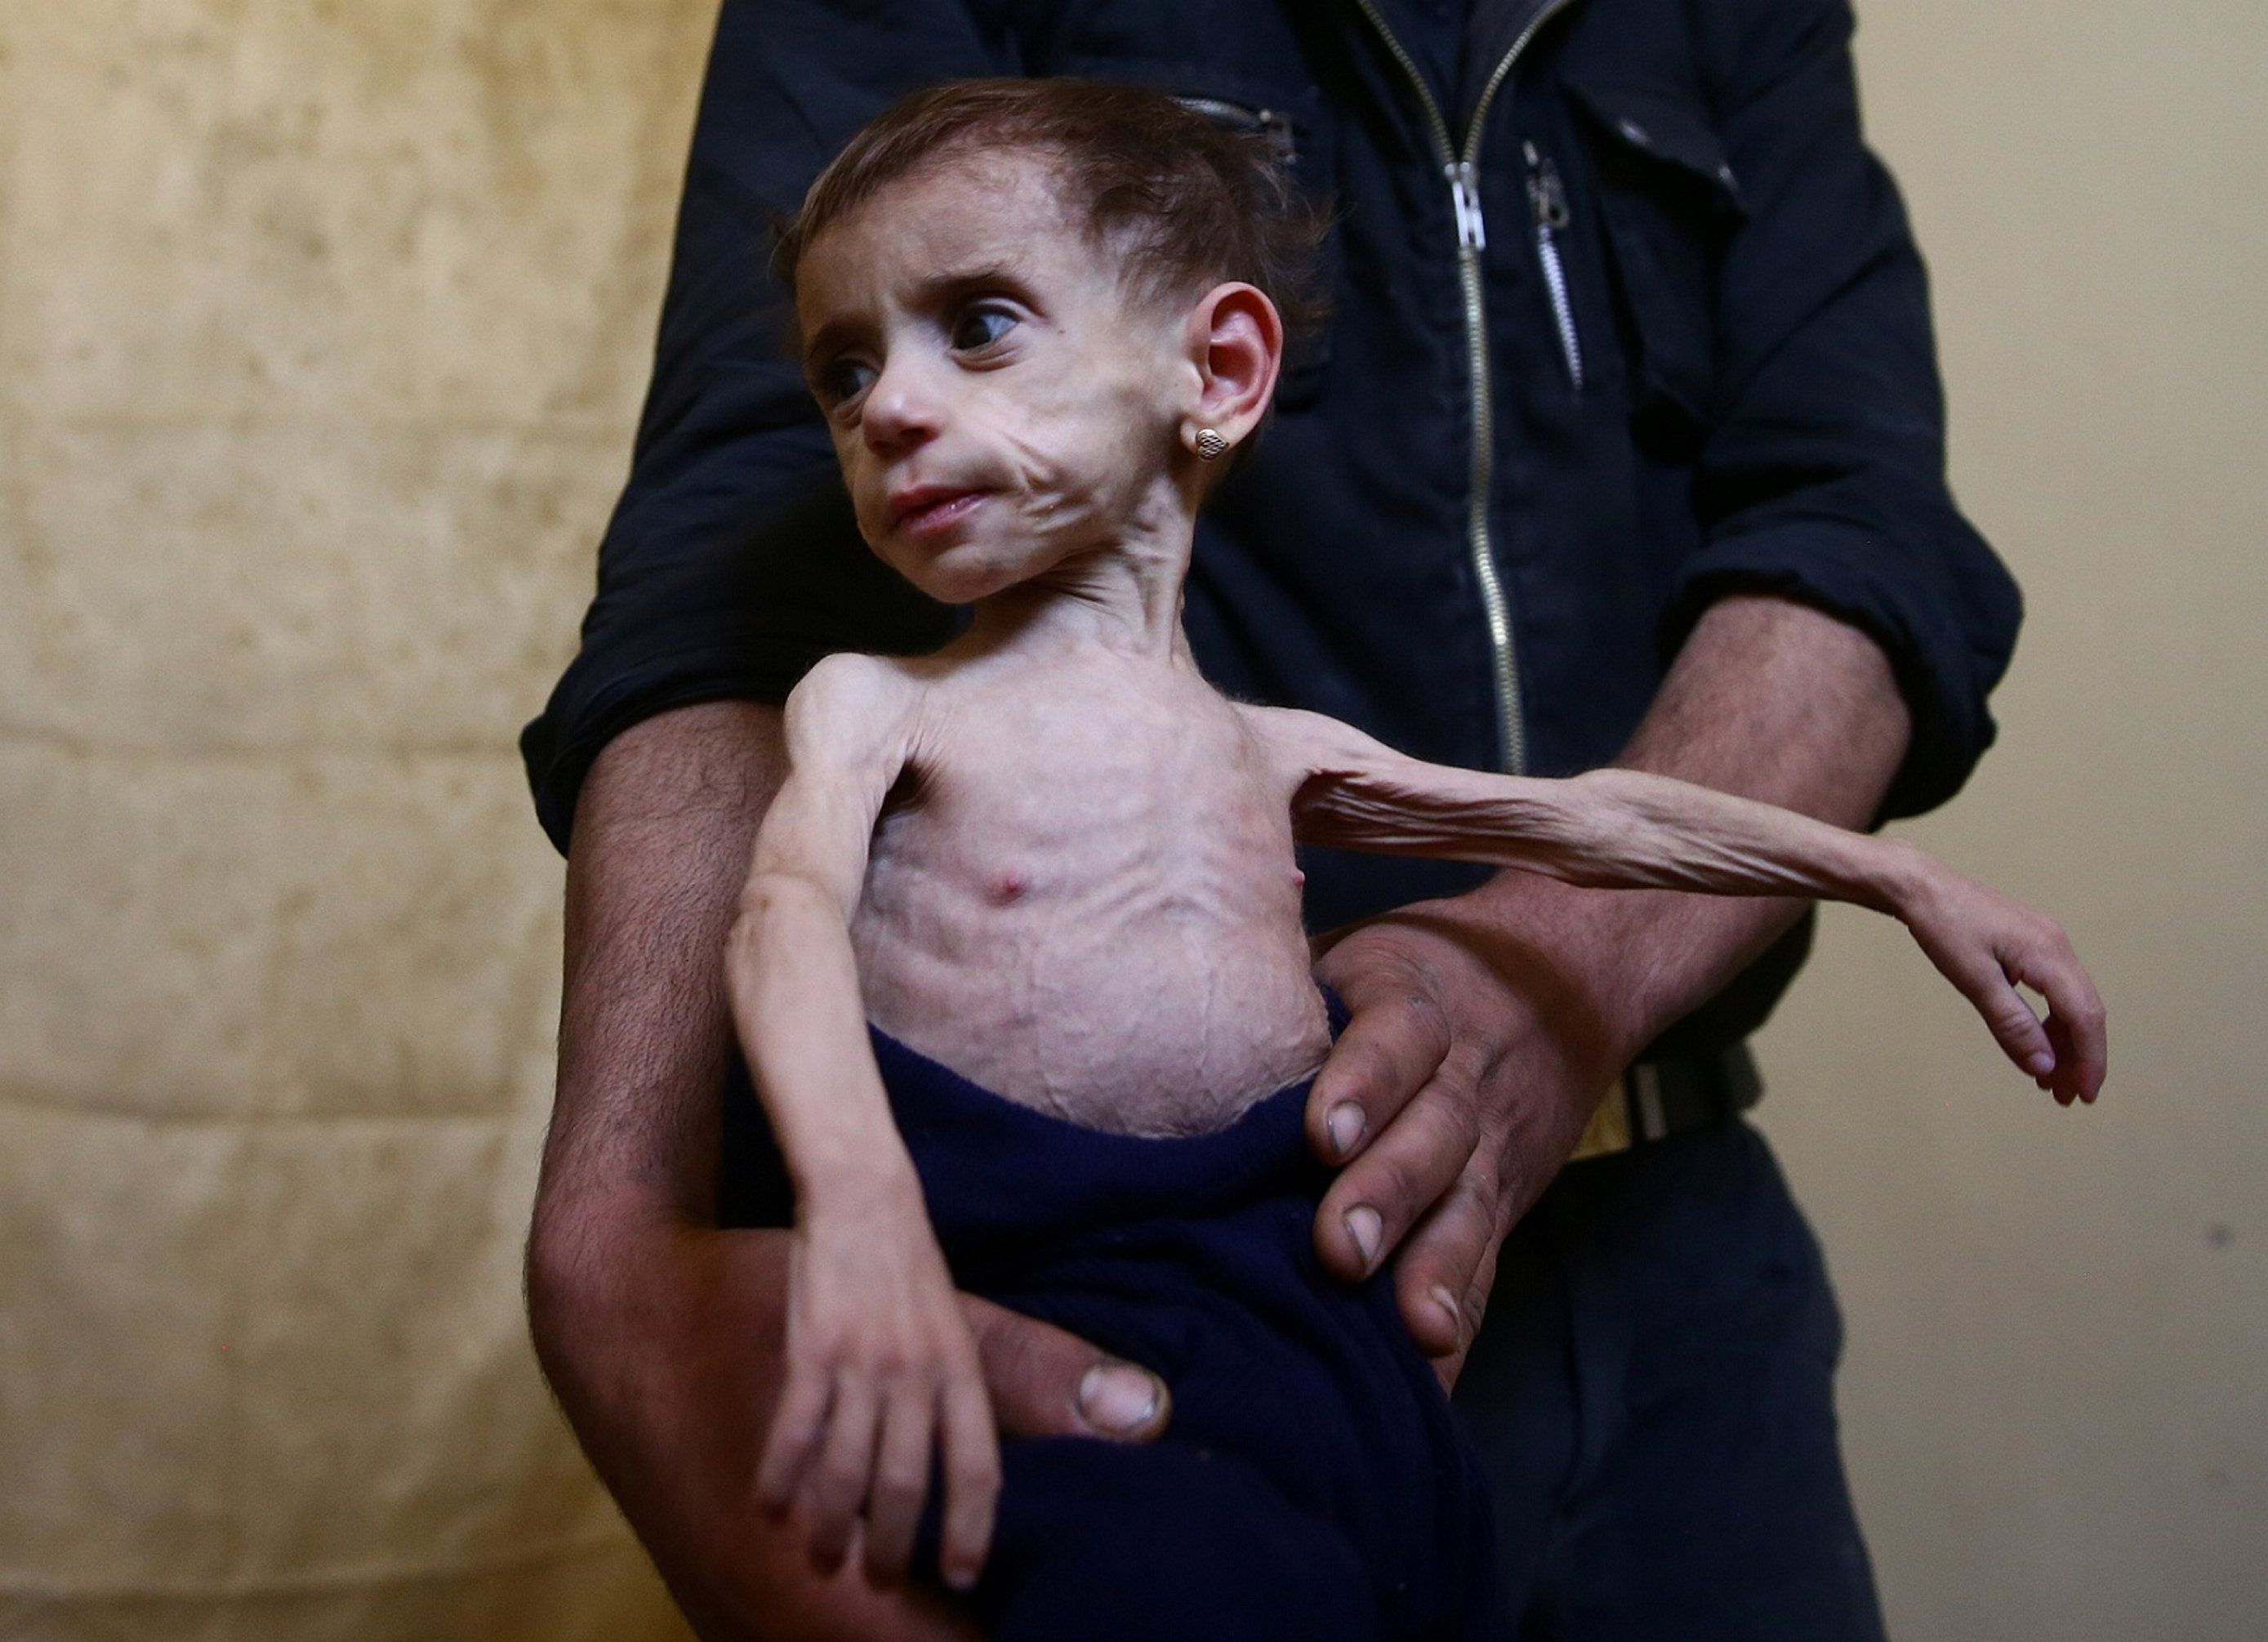 Hala al-Nufi, 2, shown here on Oct. 25, suffers from a metabolic disorder that is worsening due to the siege and food shortag